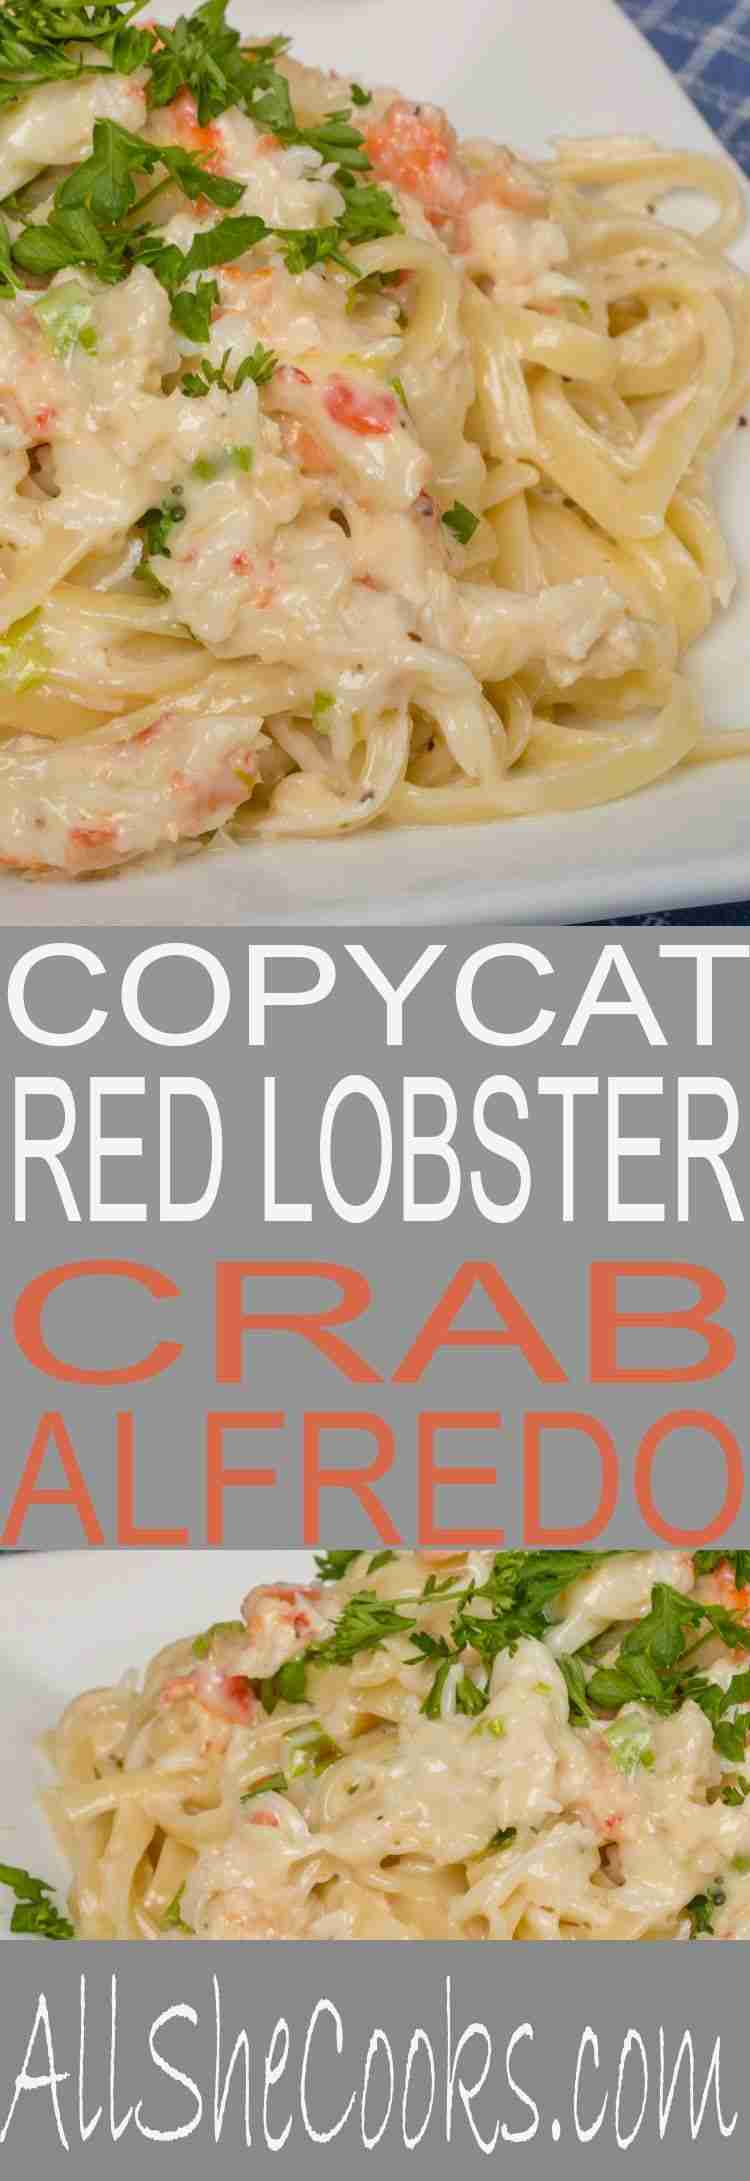 Copycat Red Lobster Crab Alfredo | So good! | All She Cooks